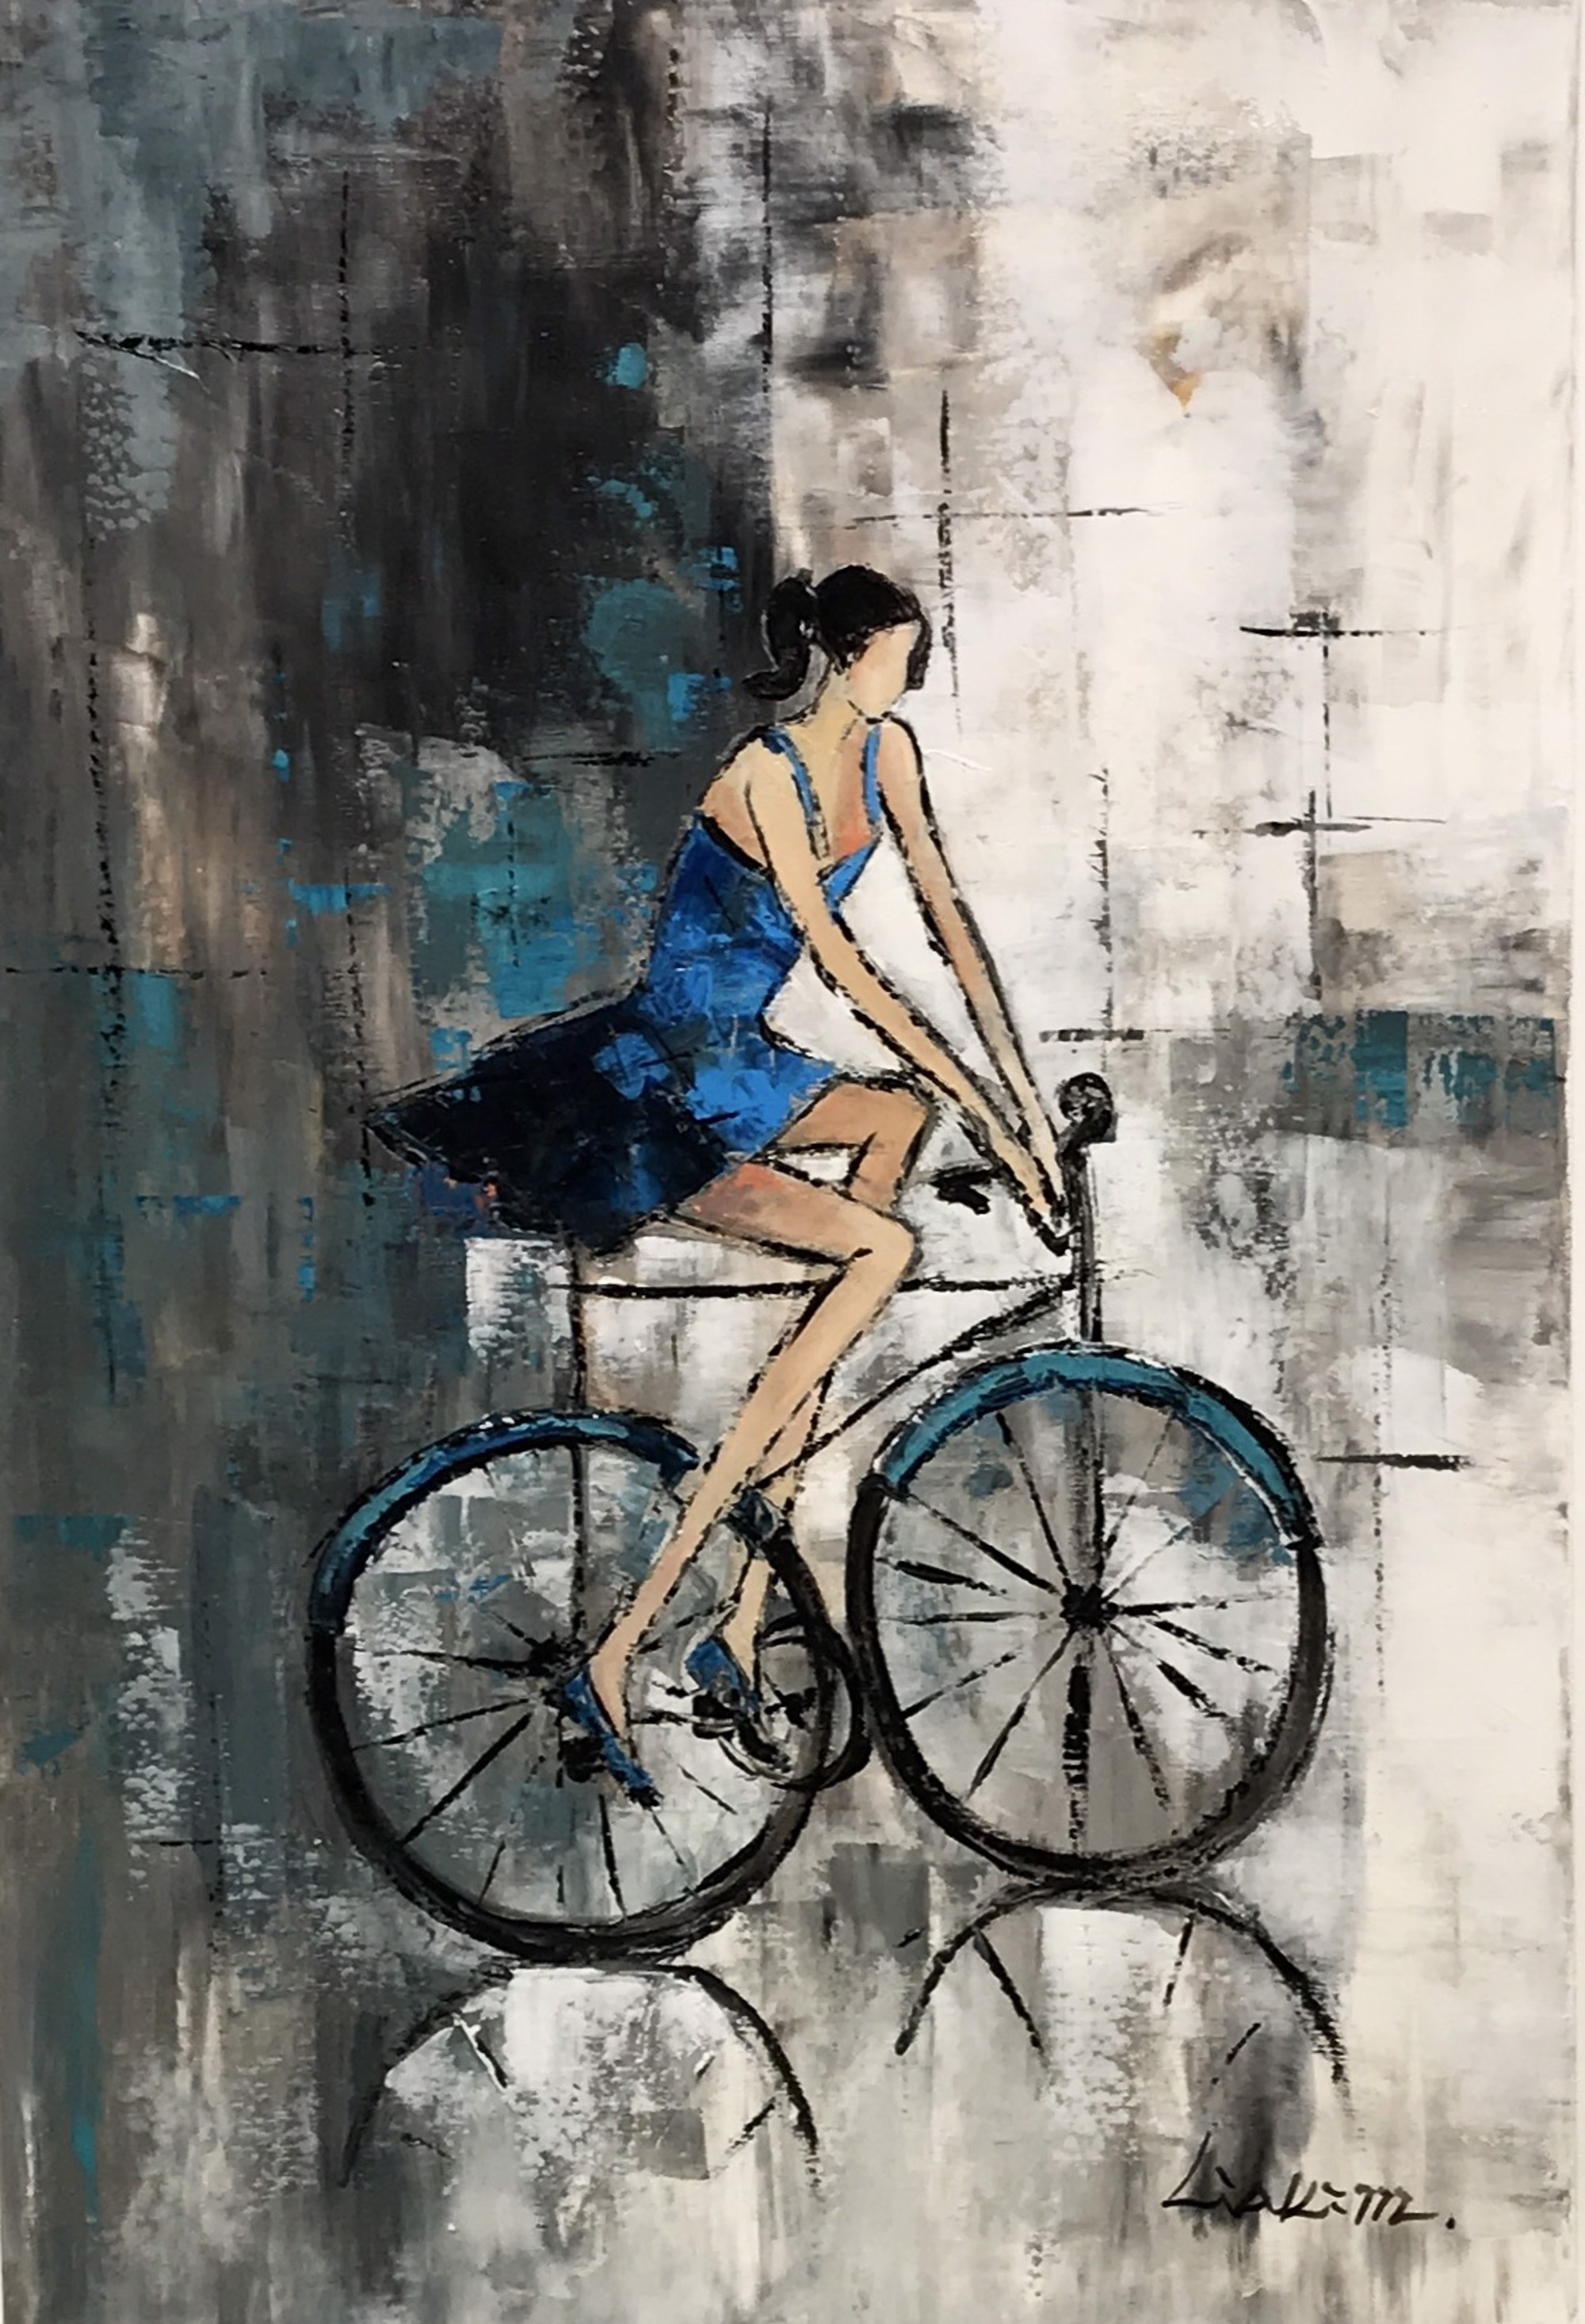 CYCLIST IN PIGTAILS by LIA KIM